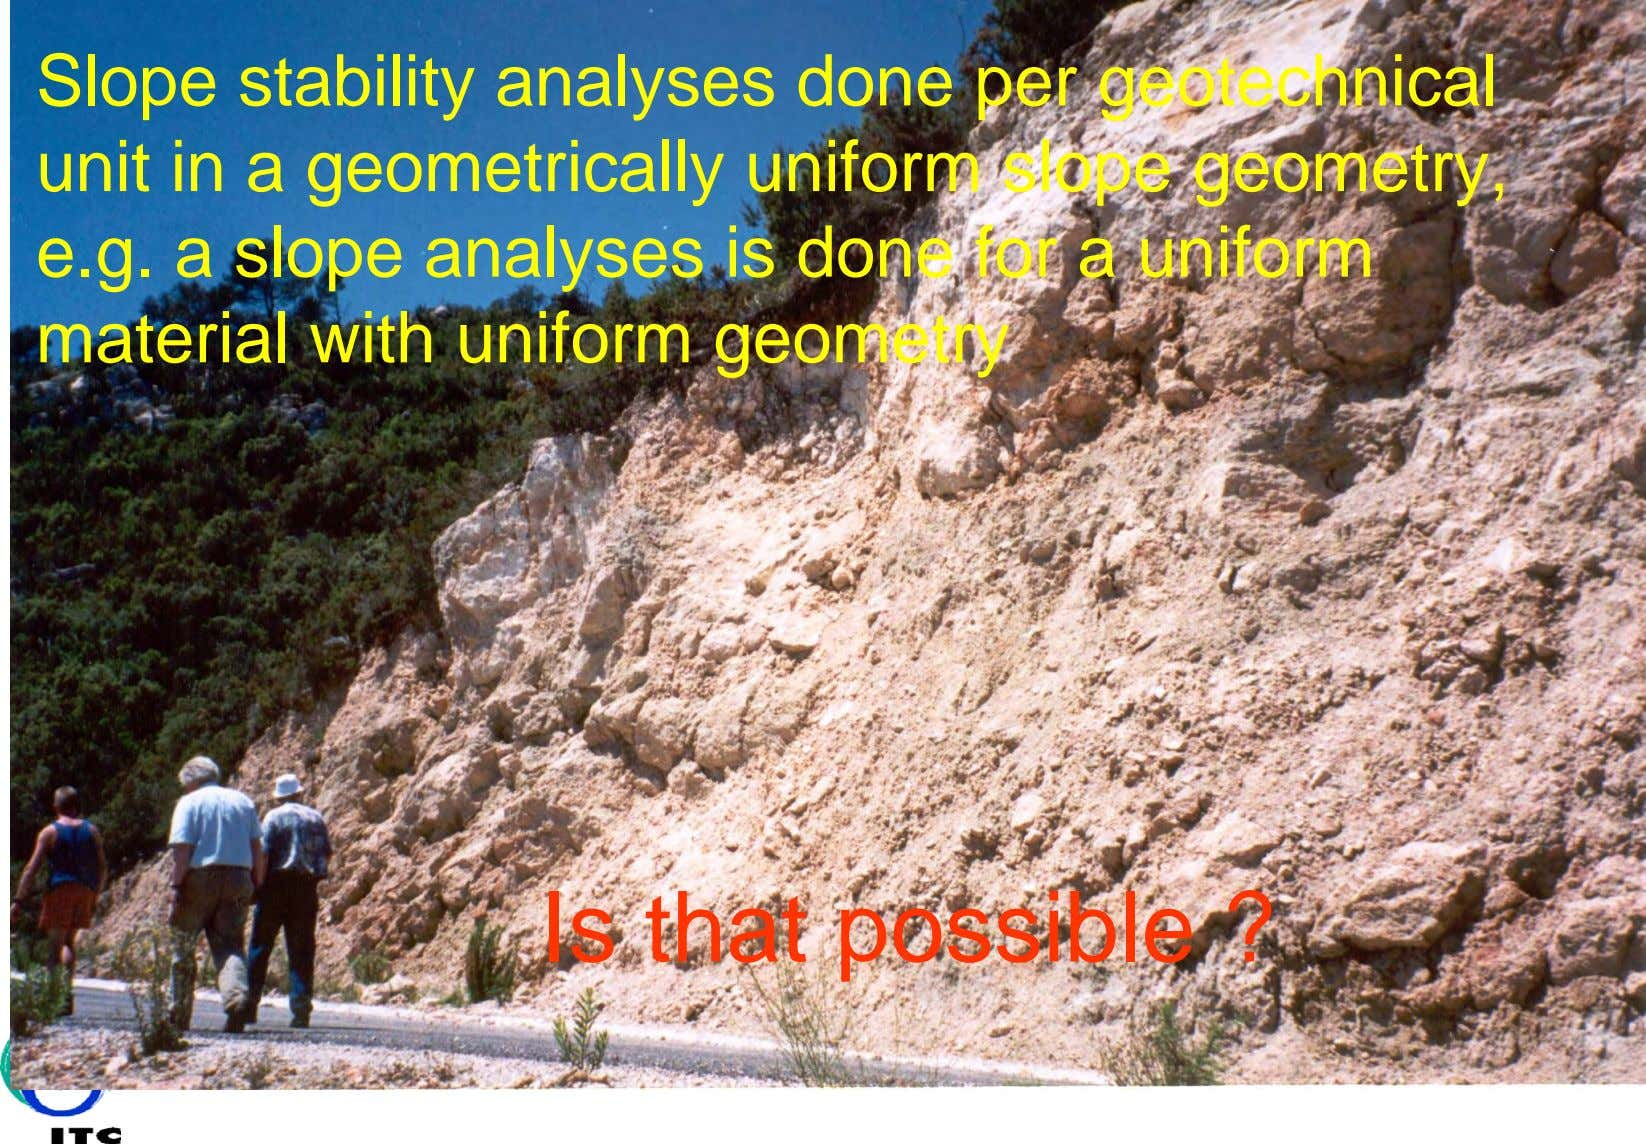 Slope stability analyses done per geotechnical unit in a geometrically uniform slope geometry, e.g. a